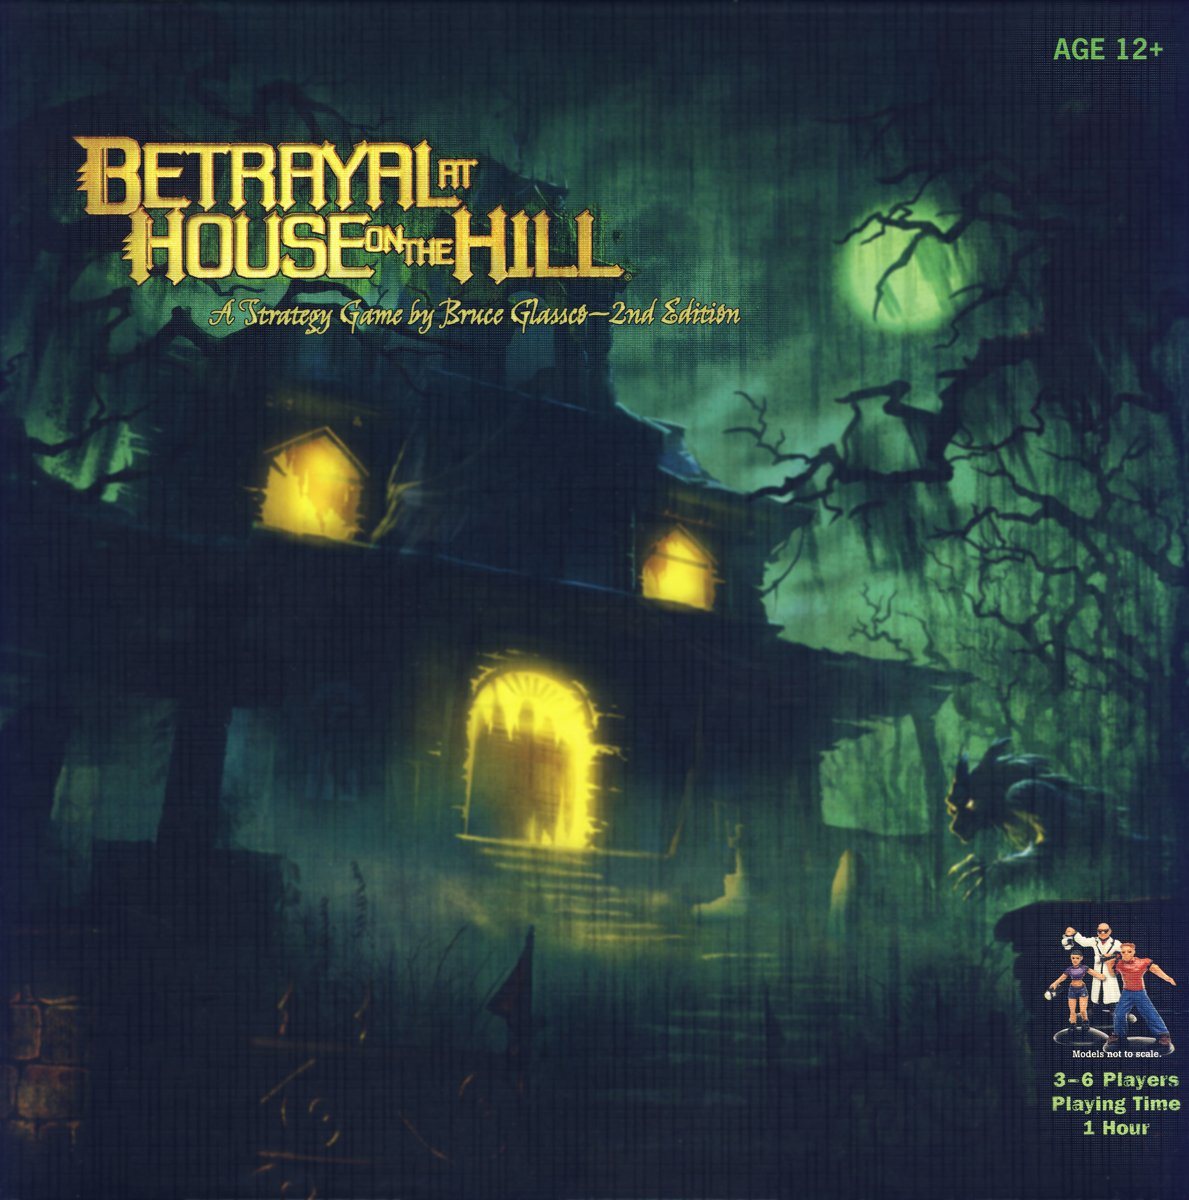 Betryal at the House on the Hill